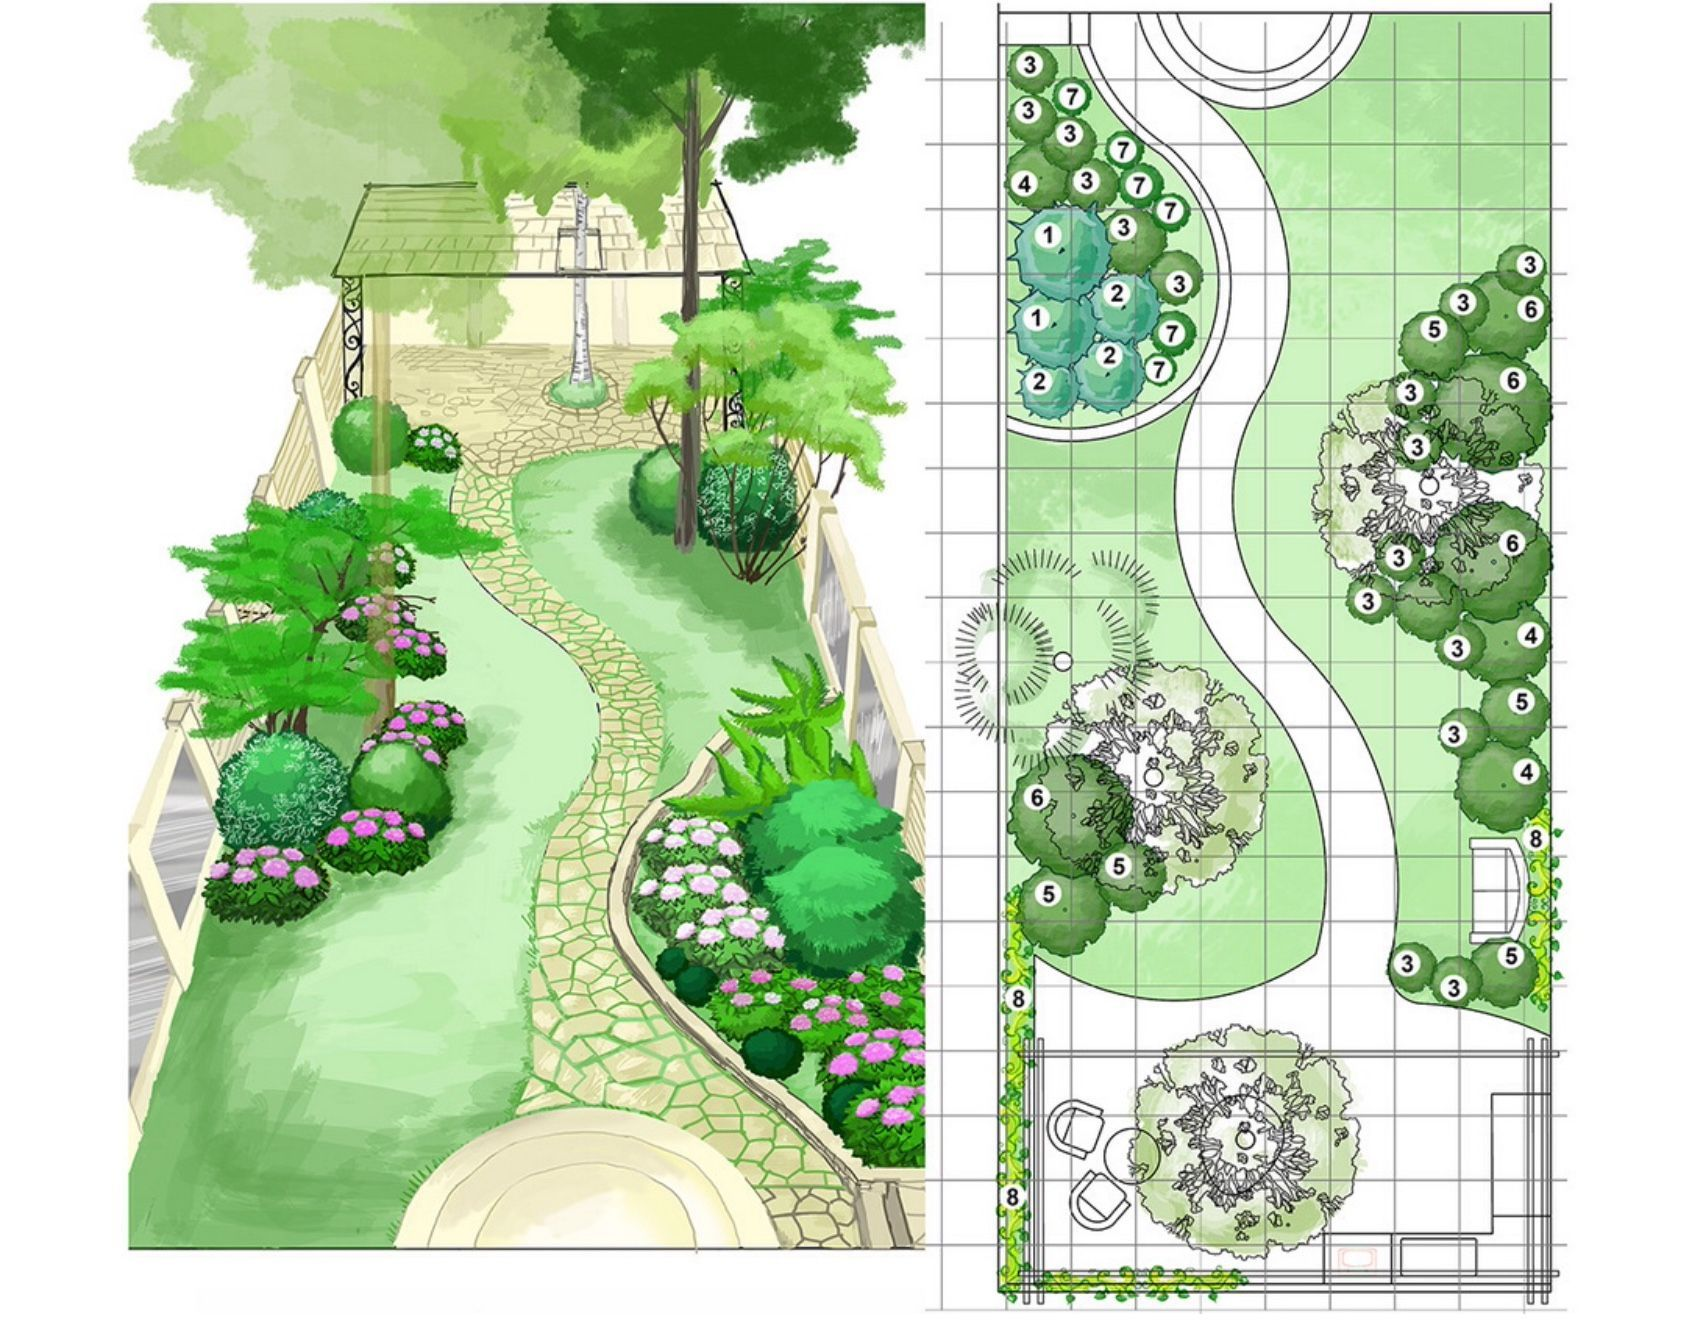 14 Clever Landscape Design Plans And Improvements For A Small Backyard Simphome In 2020 English Garden Design Back Garden Design Garden Design Plans